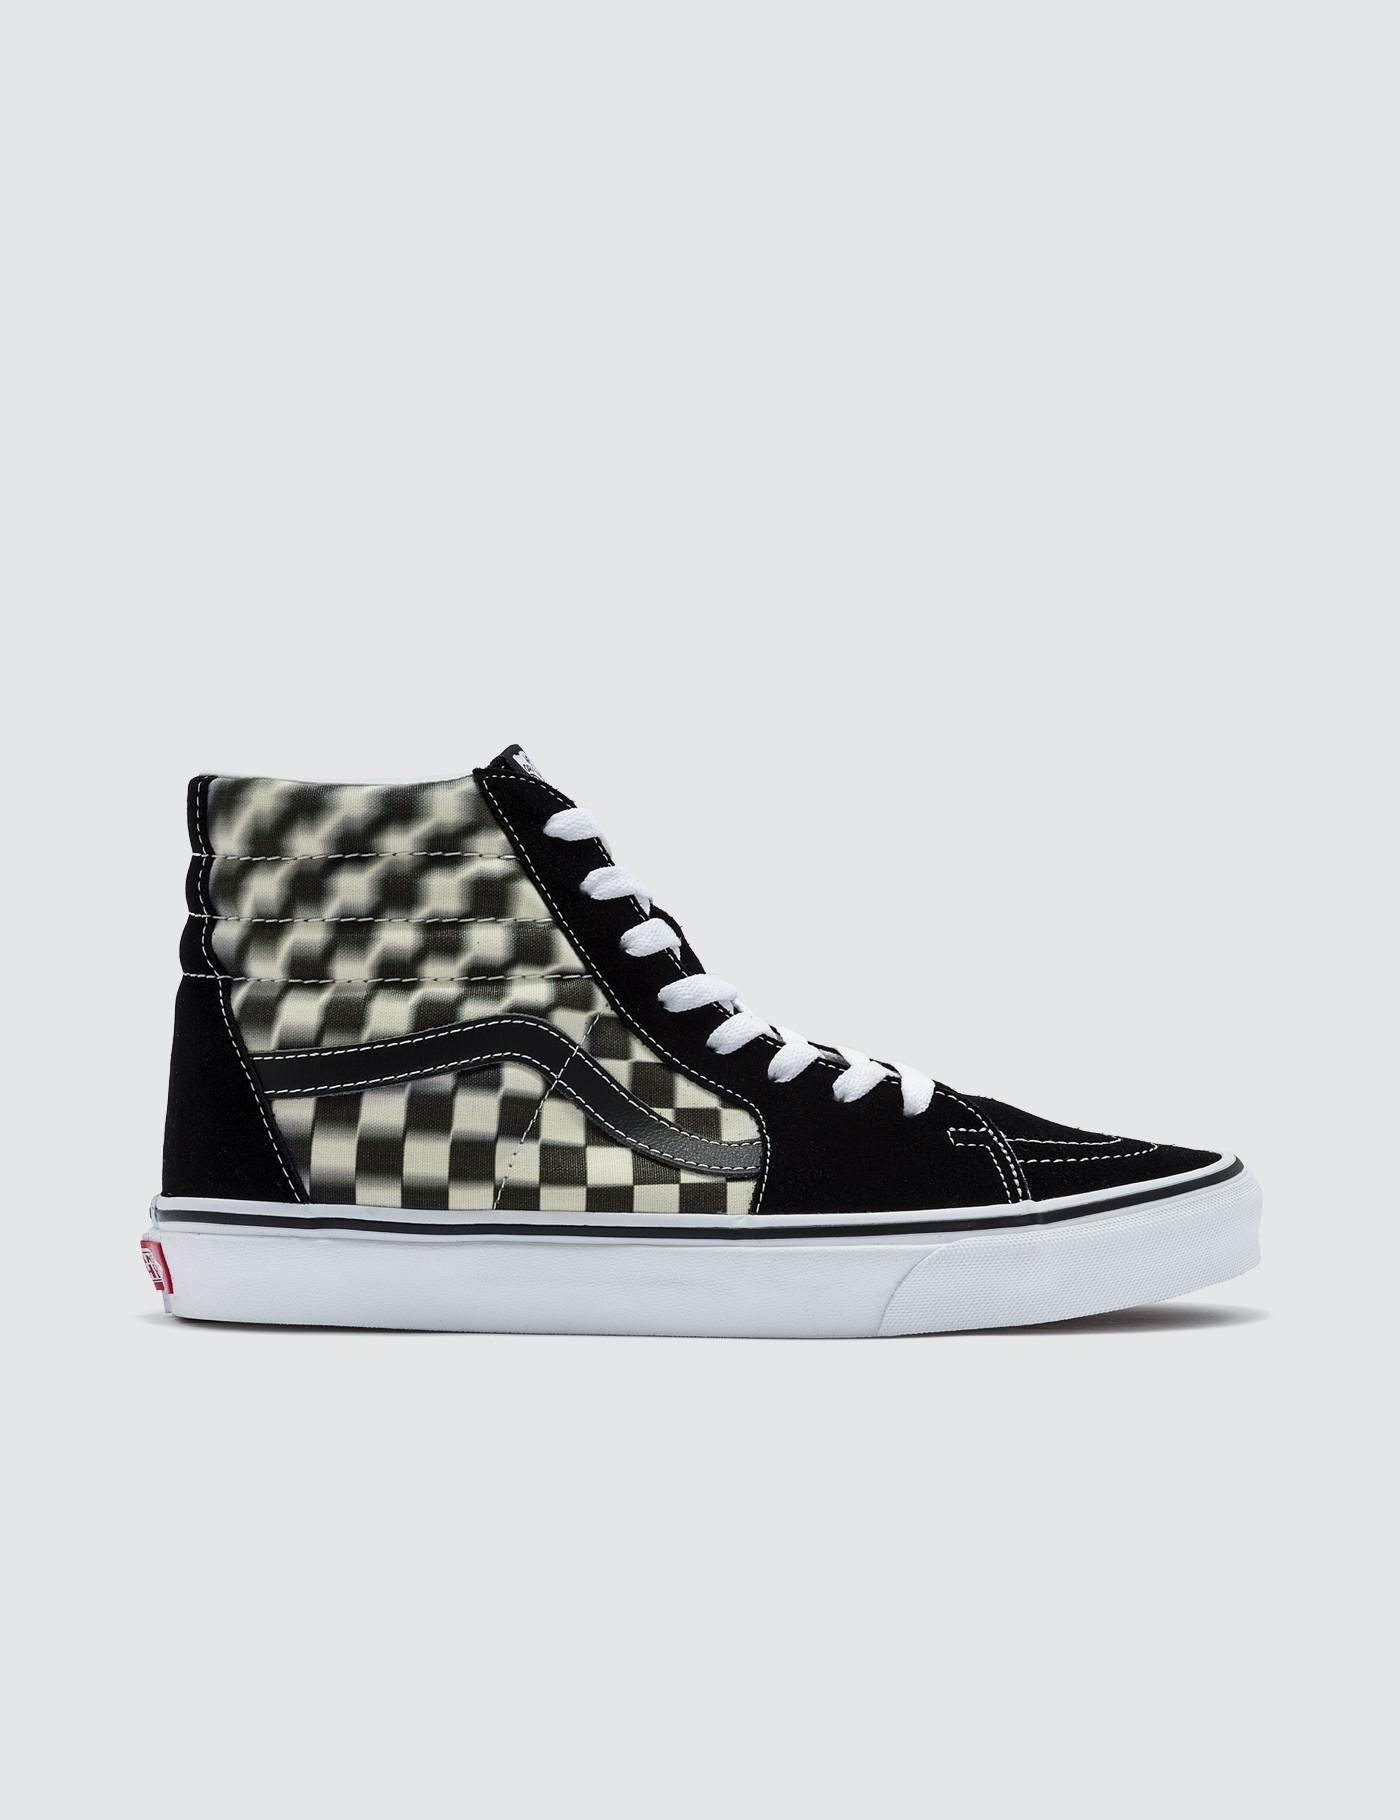 465974356382a9 Vans Sk8-hi in Black for Men - Lyst